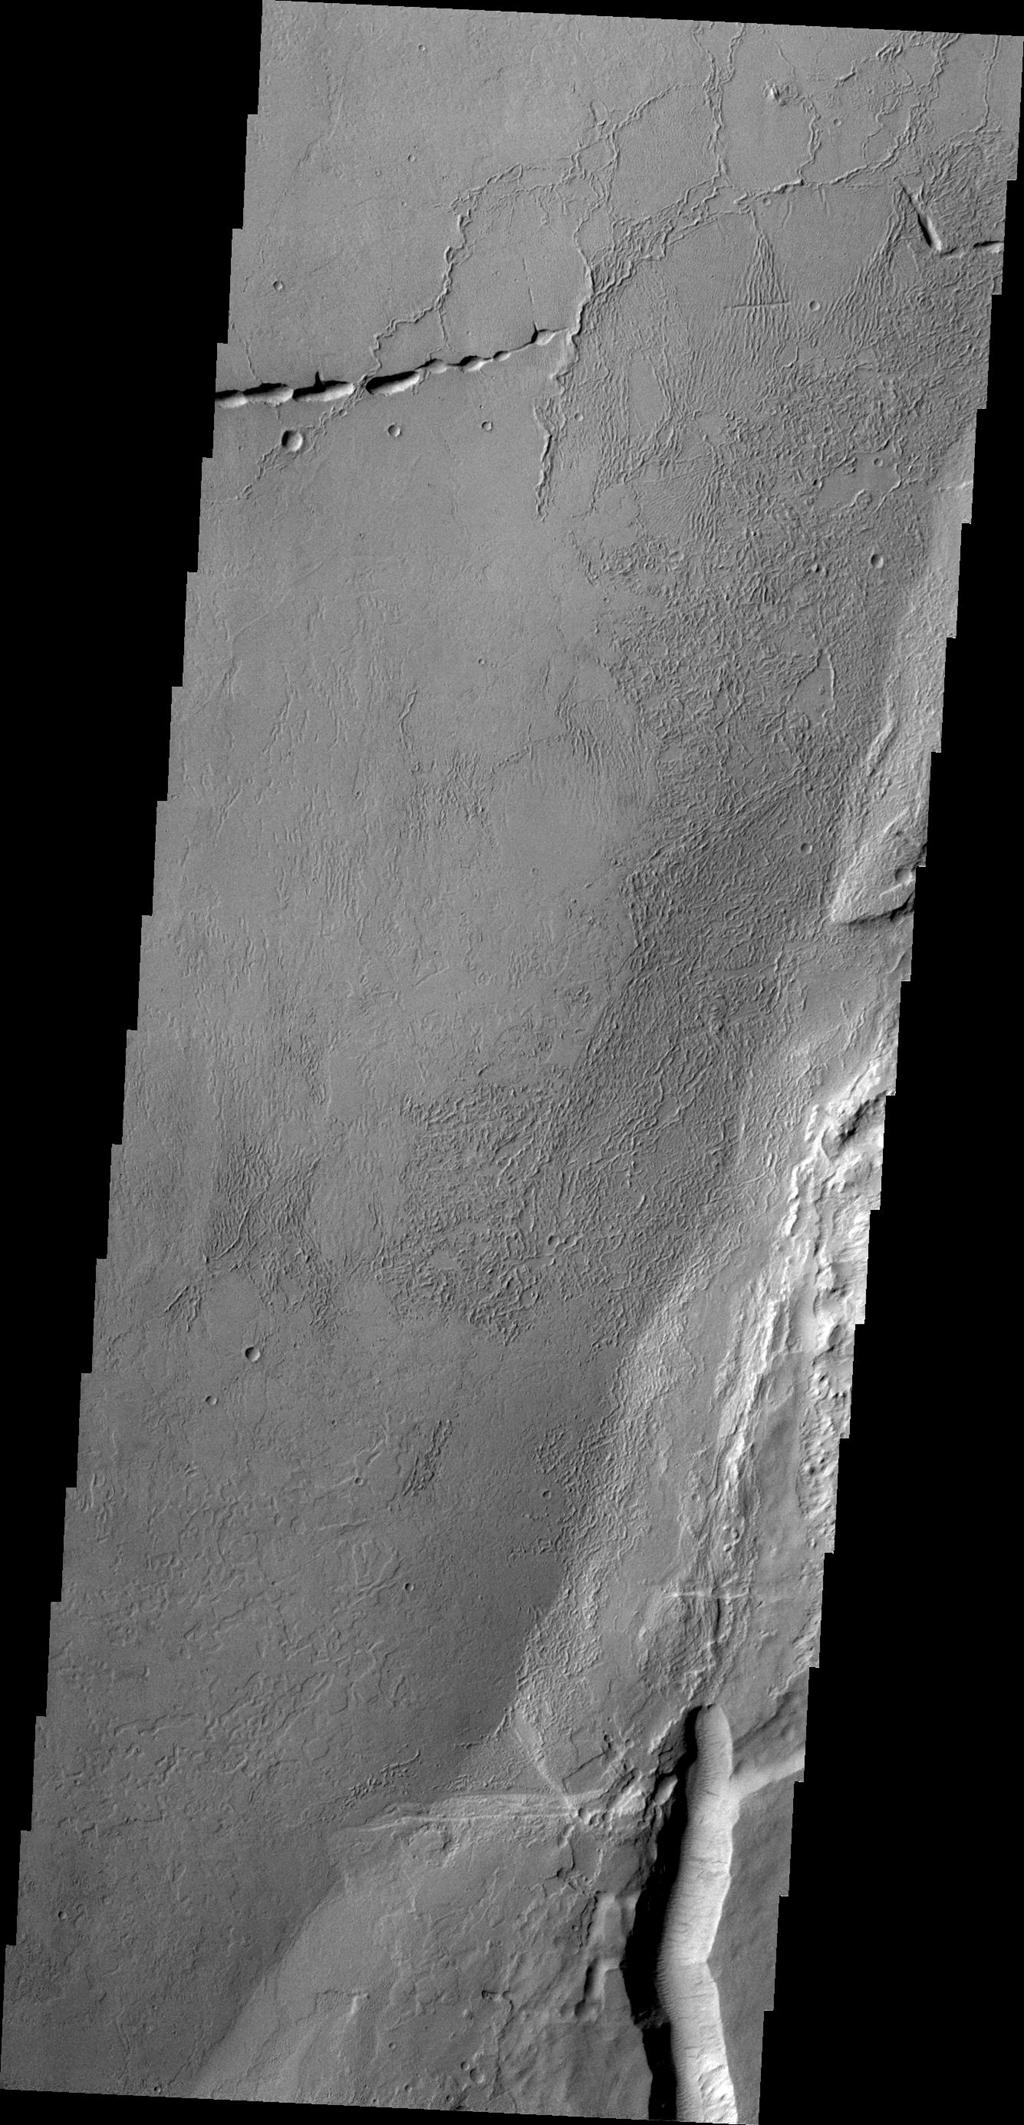 Echus Chasma separates the Tharsis region from Lunae Planum. This image from NASA's 2001 Mars Odyssey shows volcanic flow materials from Tharsis within the chasma.